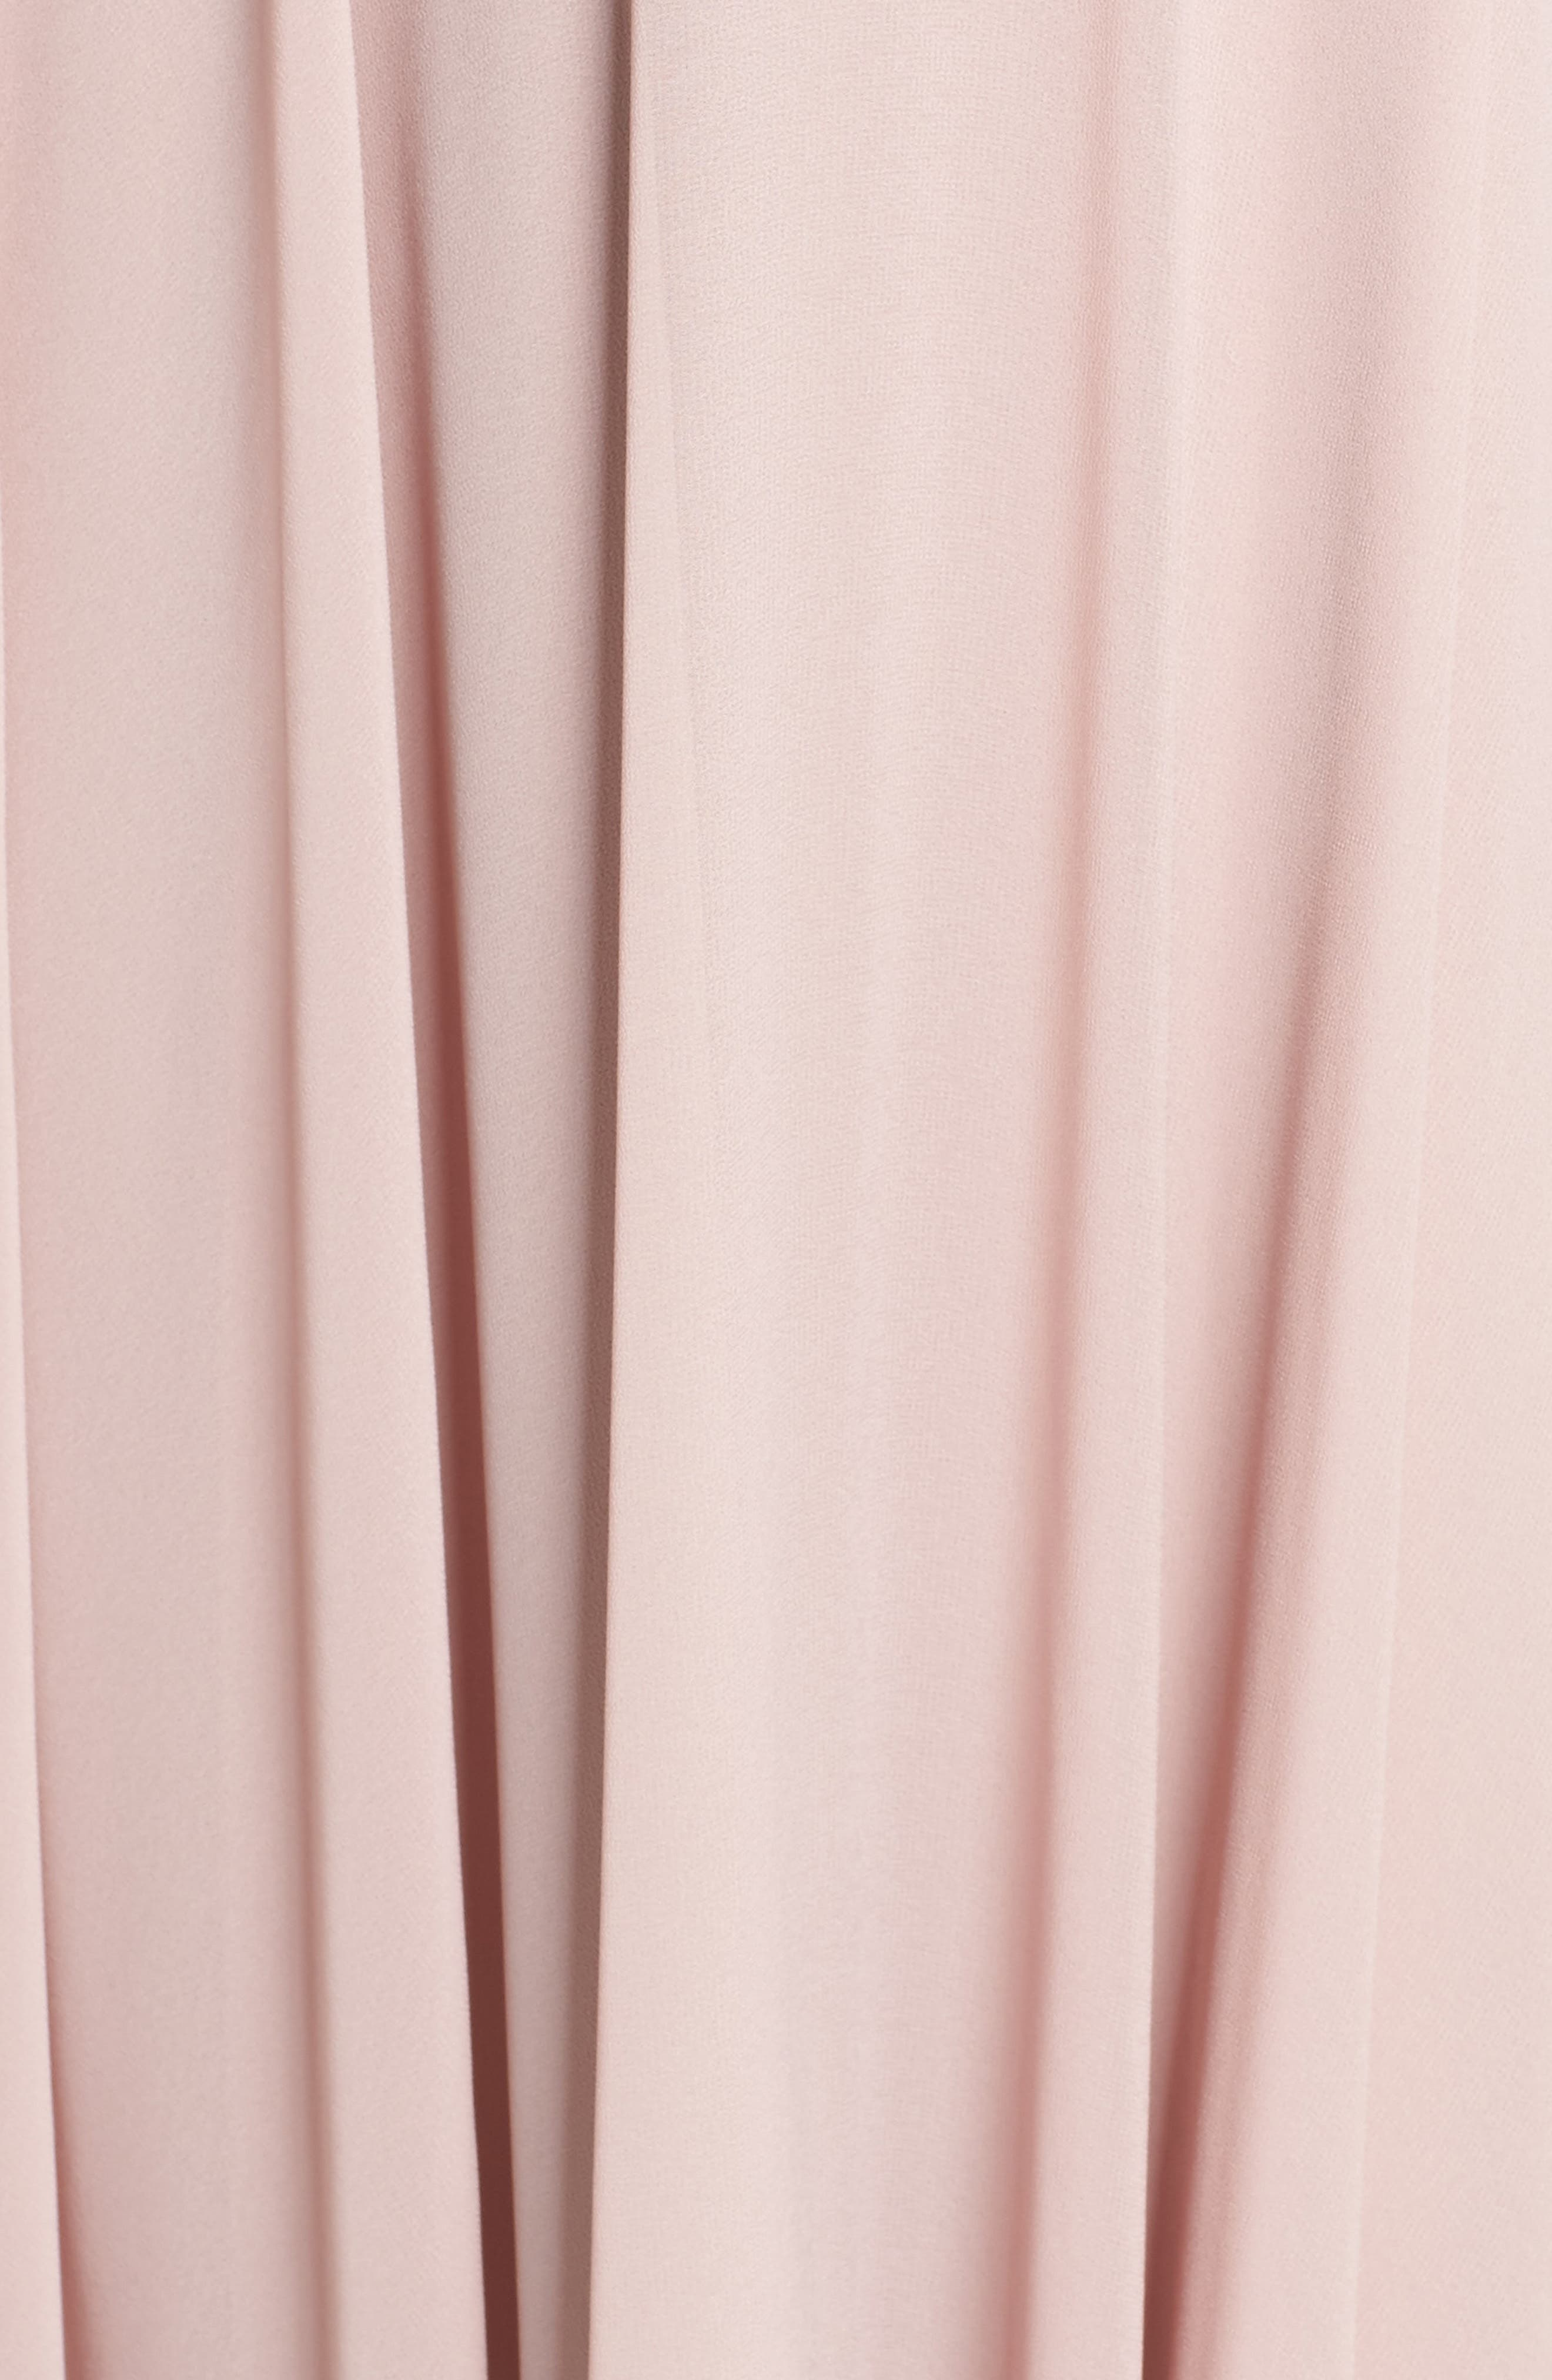 HAYLEY PAIGE OCCASIONS, Ruffle Chiffon Gown, Alternate thumbnail 6, color, DUSTY ROSE